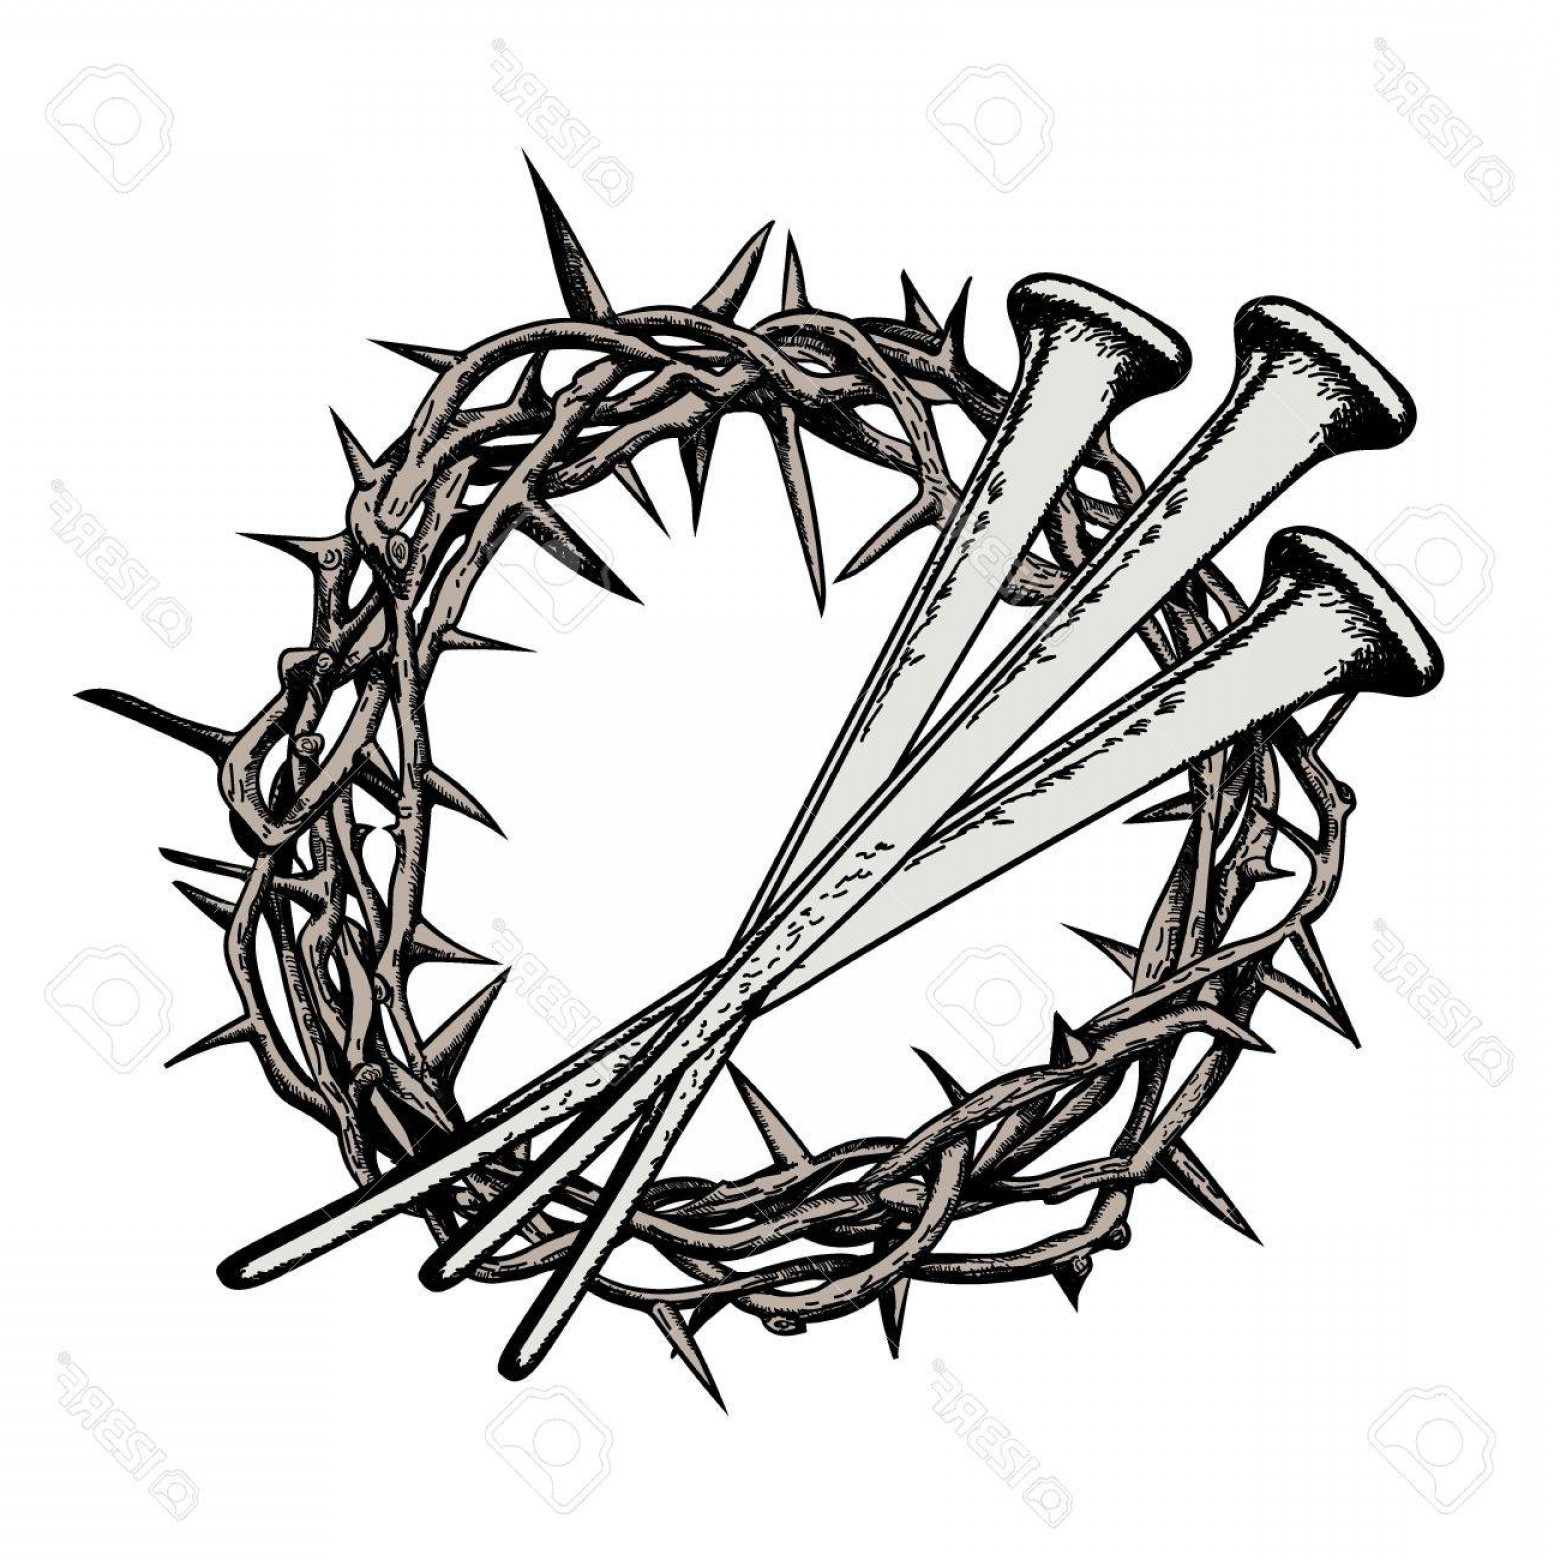 Nail Cross Vector: Photostock Vector The Crown Of Thorns With The Nails Of Jesus Christ Symbols Of Christianity Vector Drawing